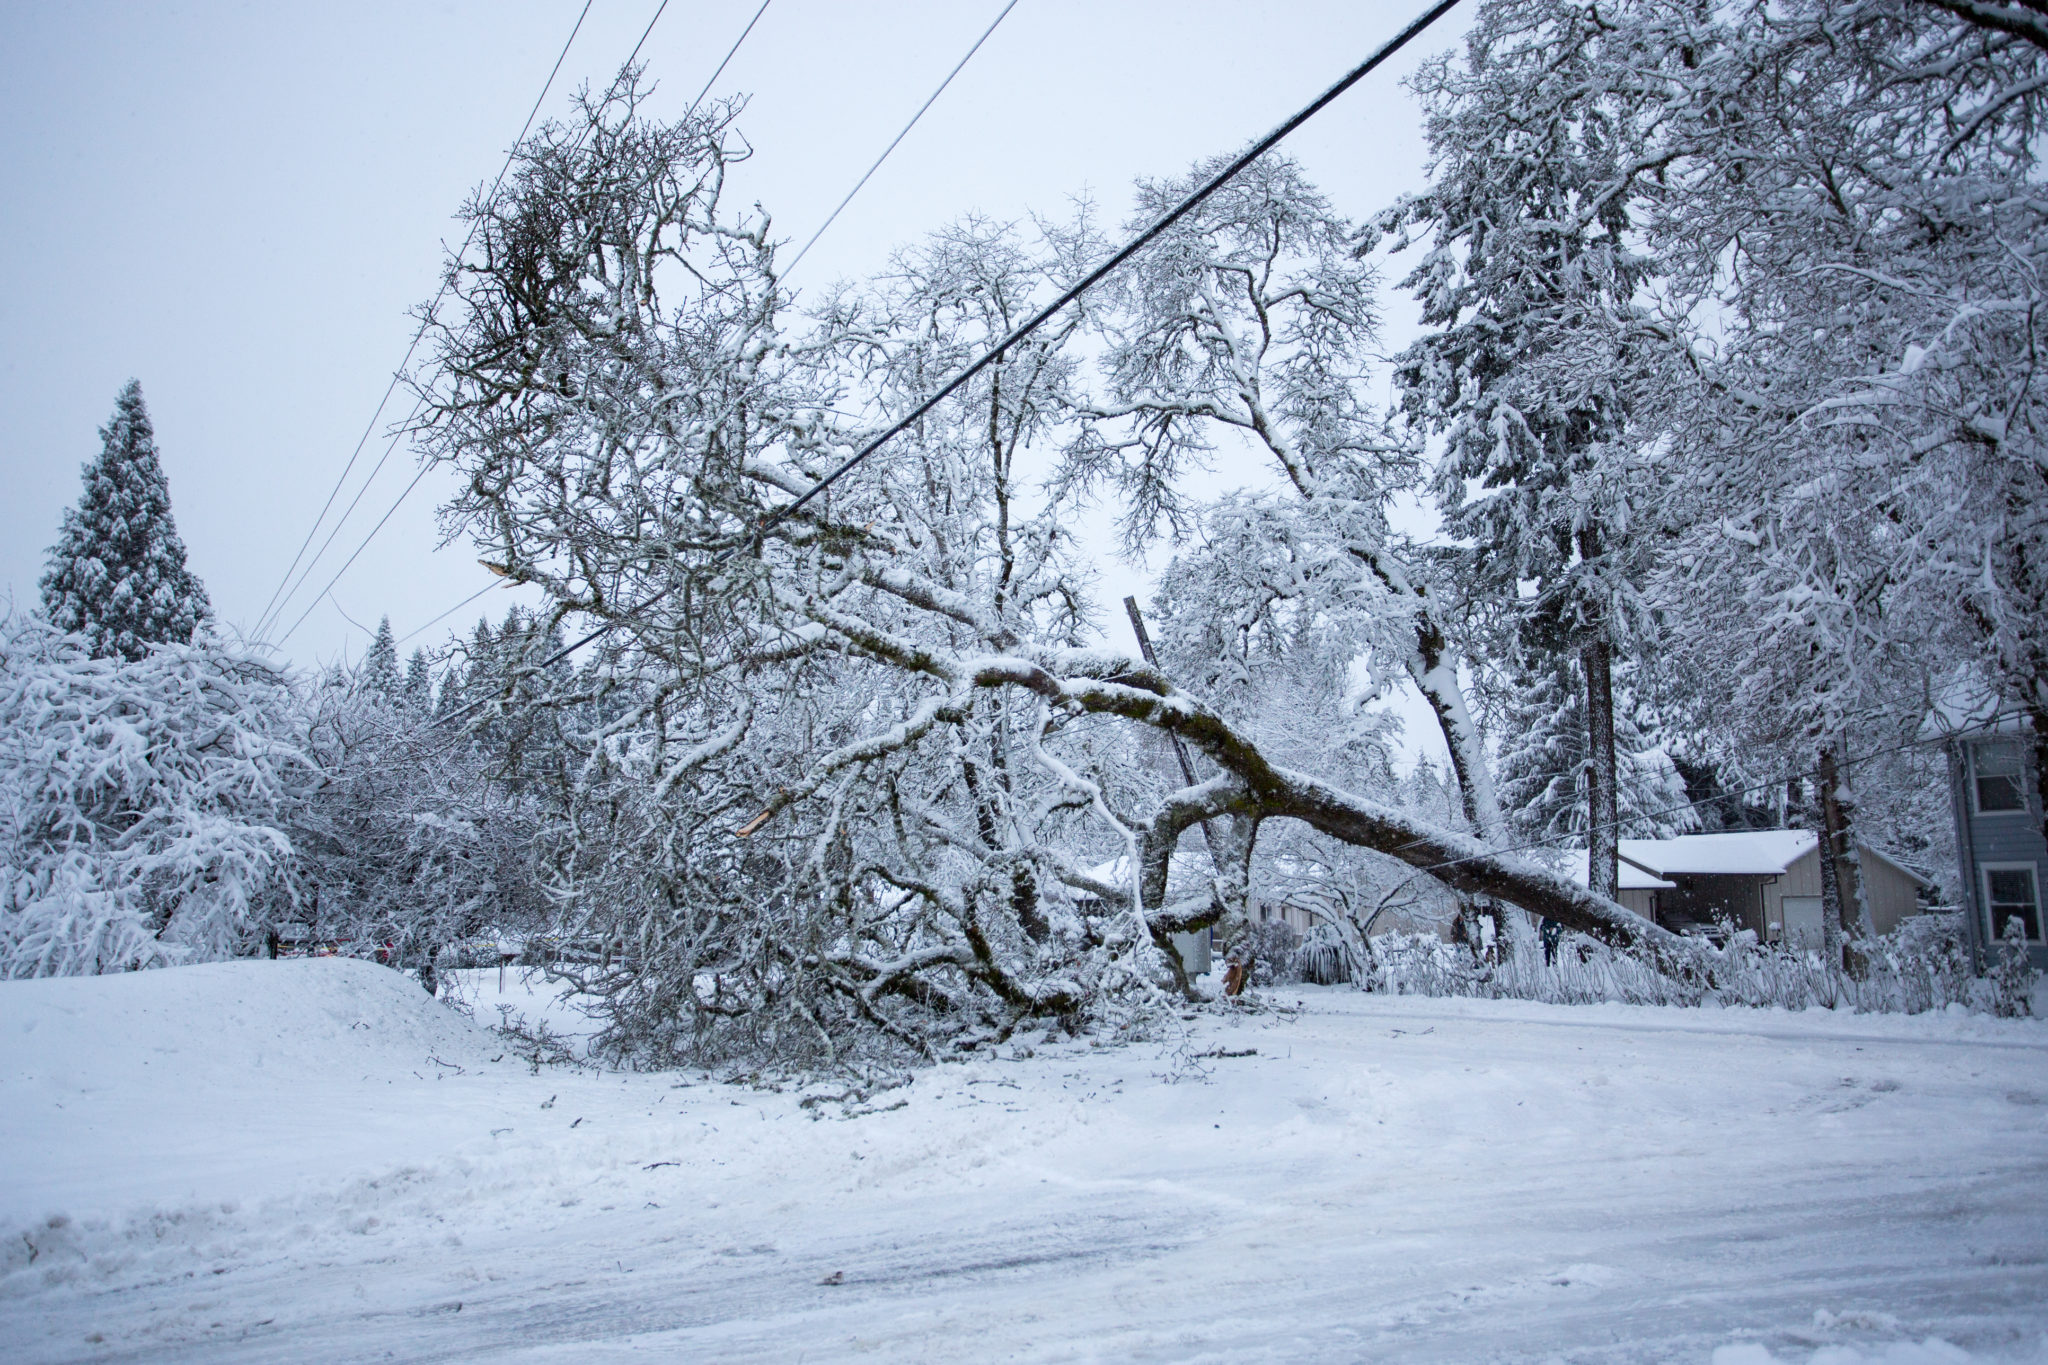 downed tree caused by a winter storm